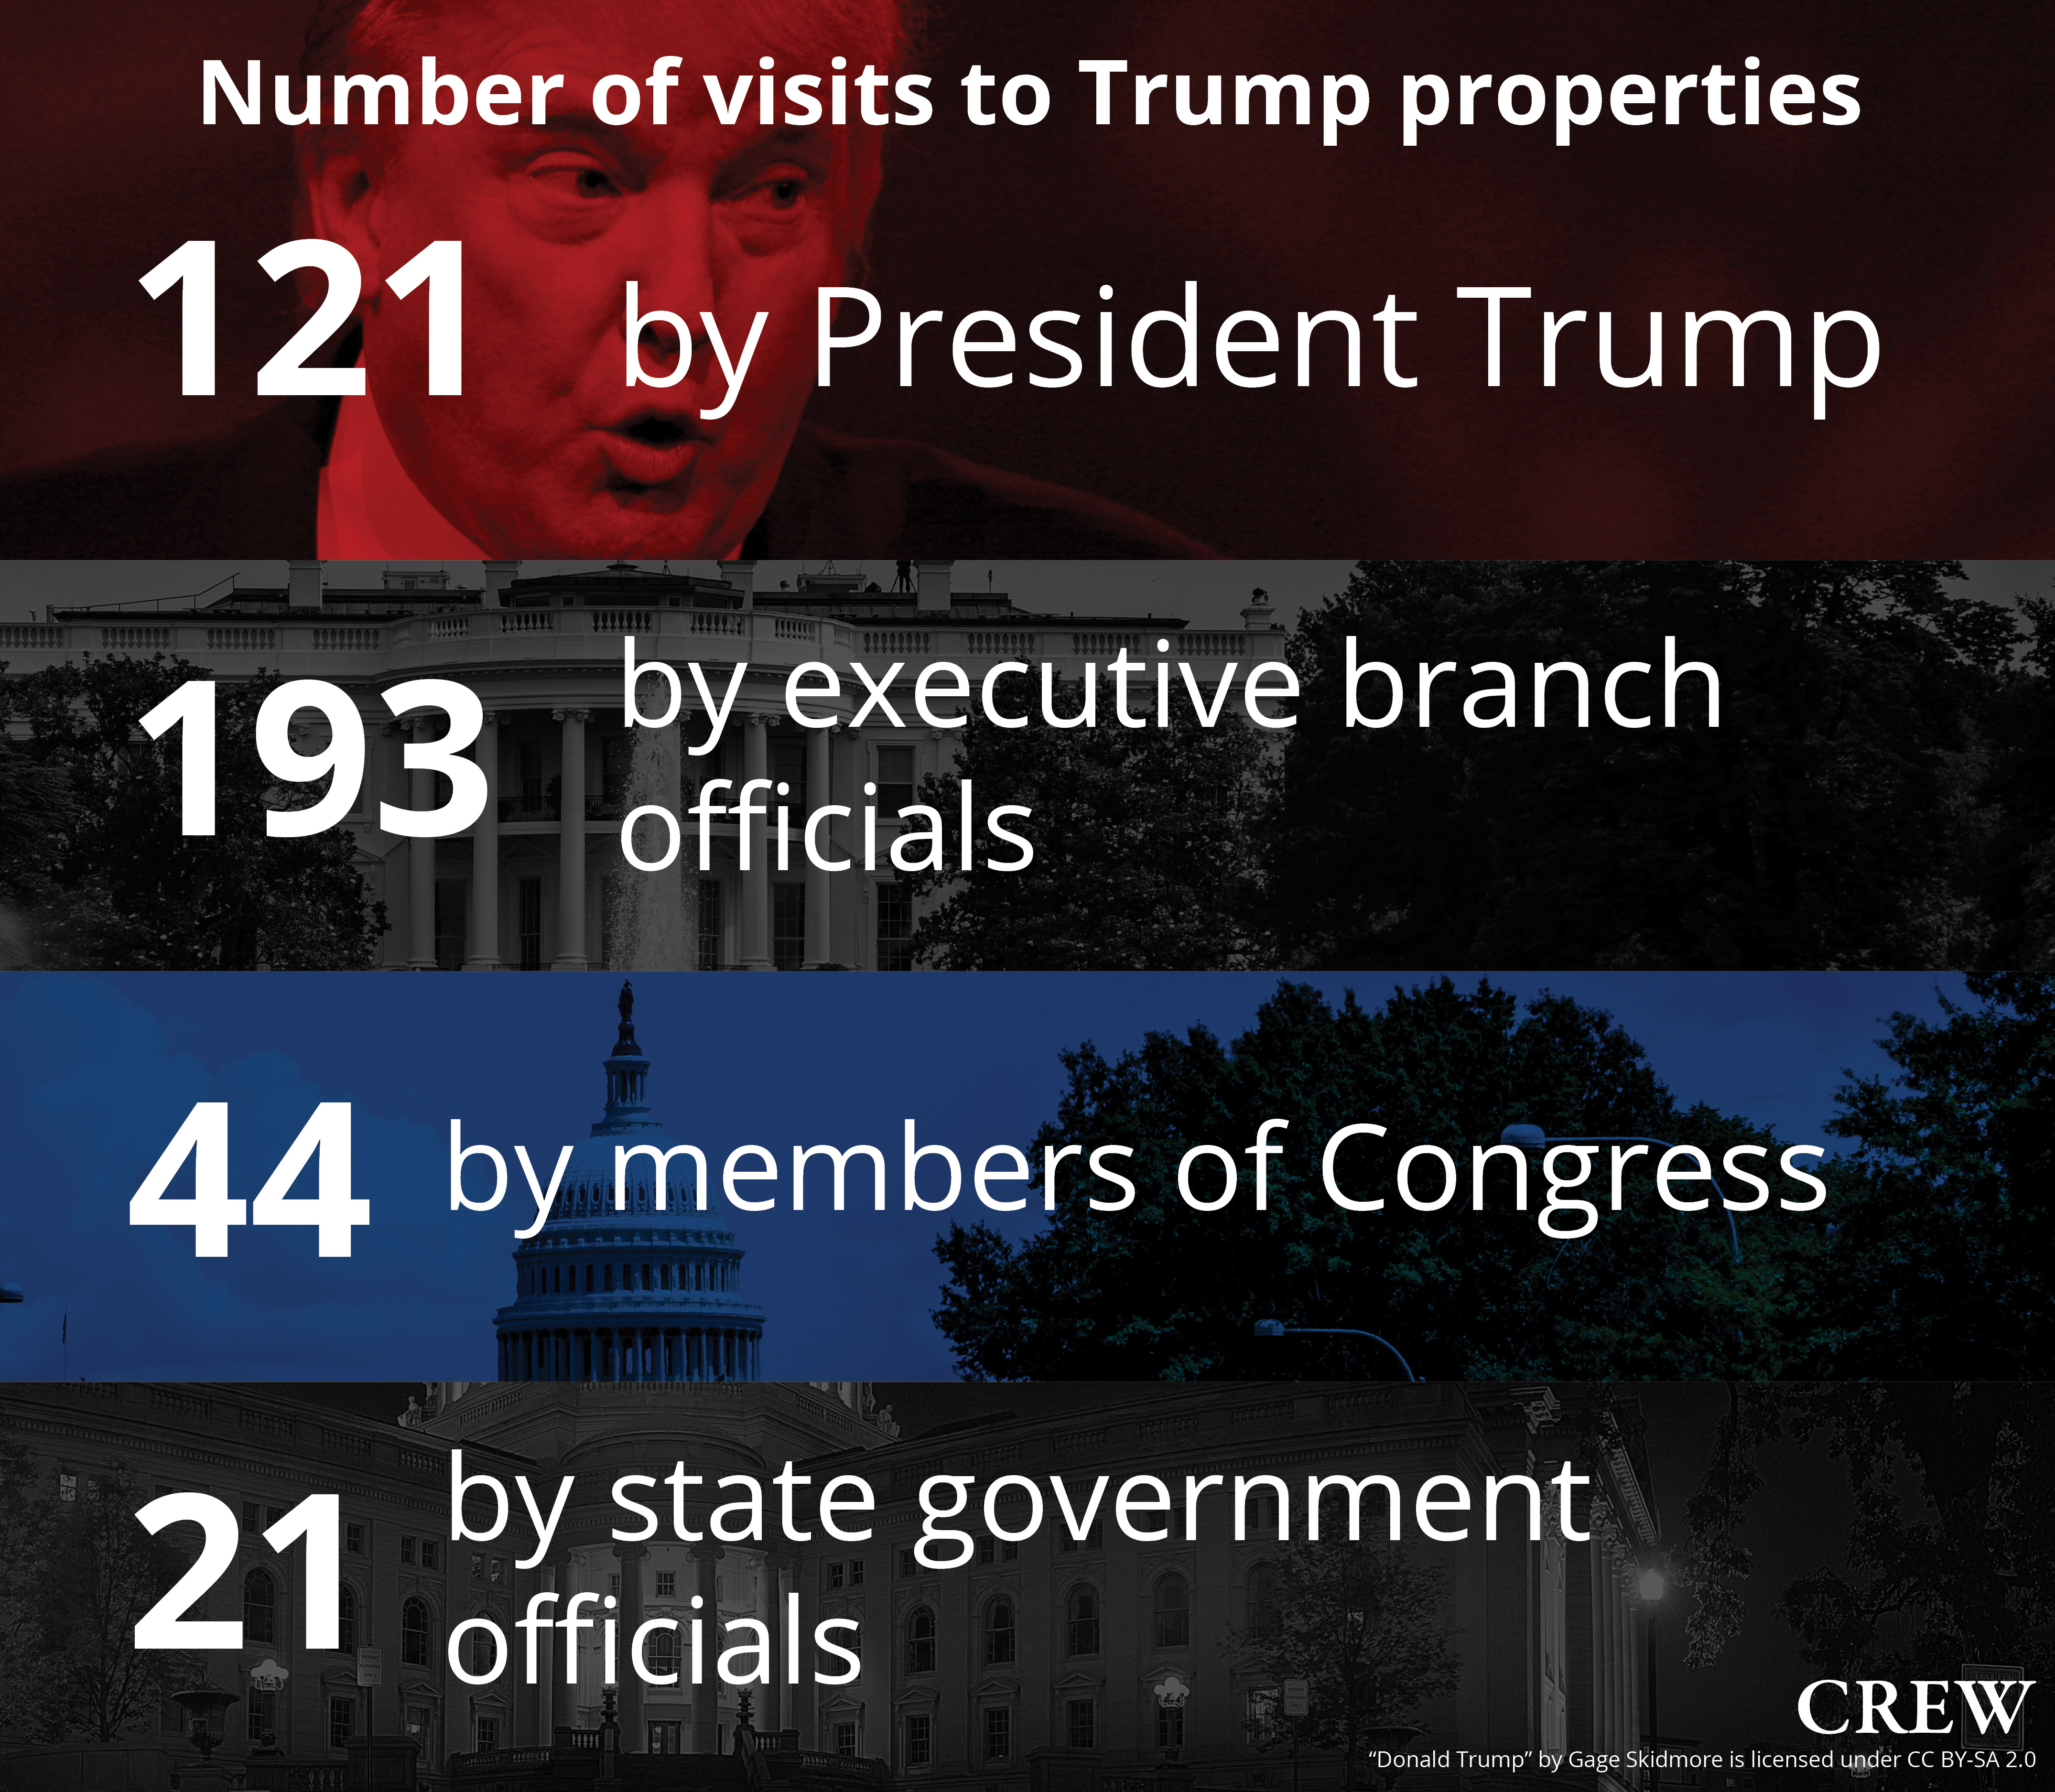 Number of visits to Trump properties